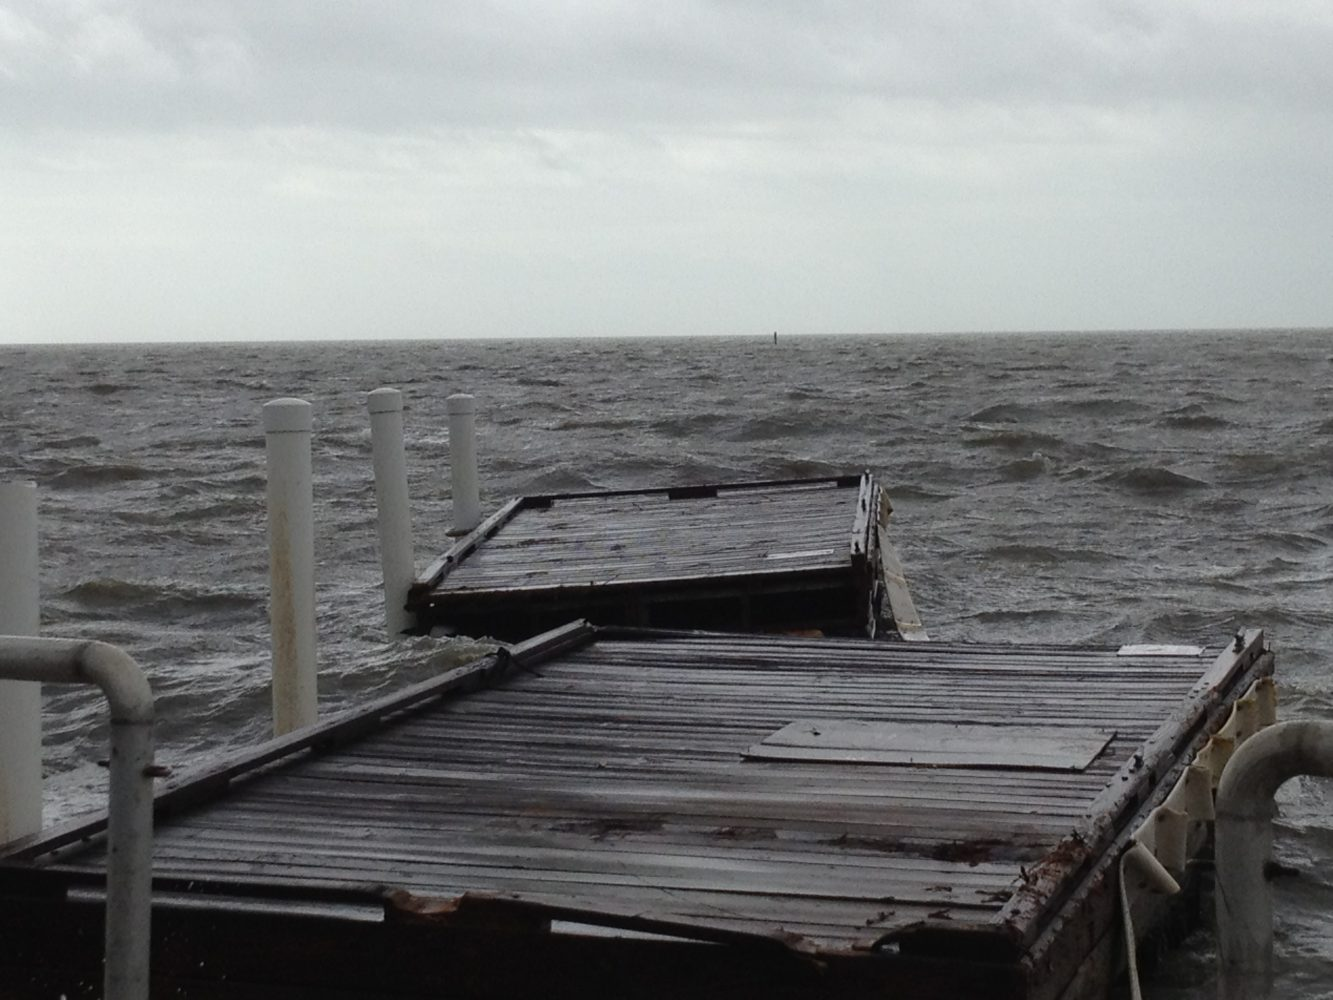 Floating docks torn away by strong waves and wind from Tropical Storm Debby